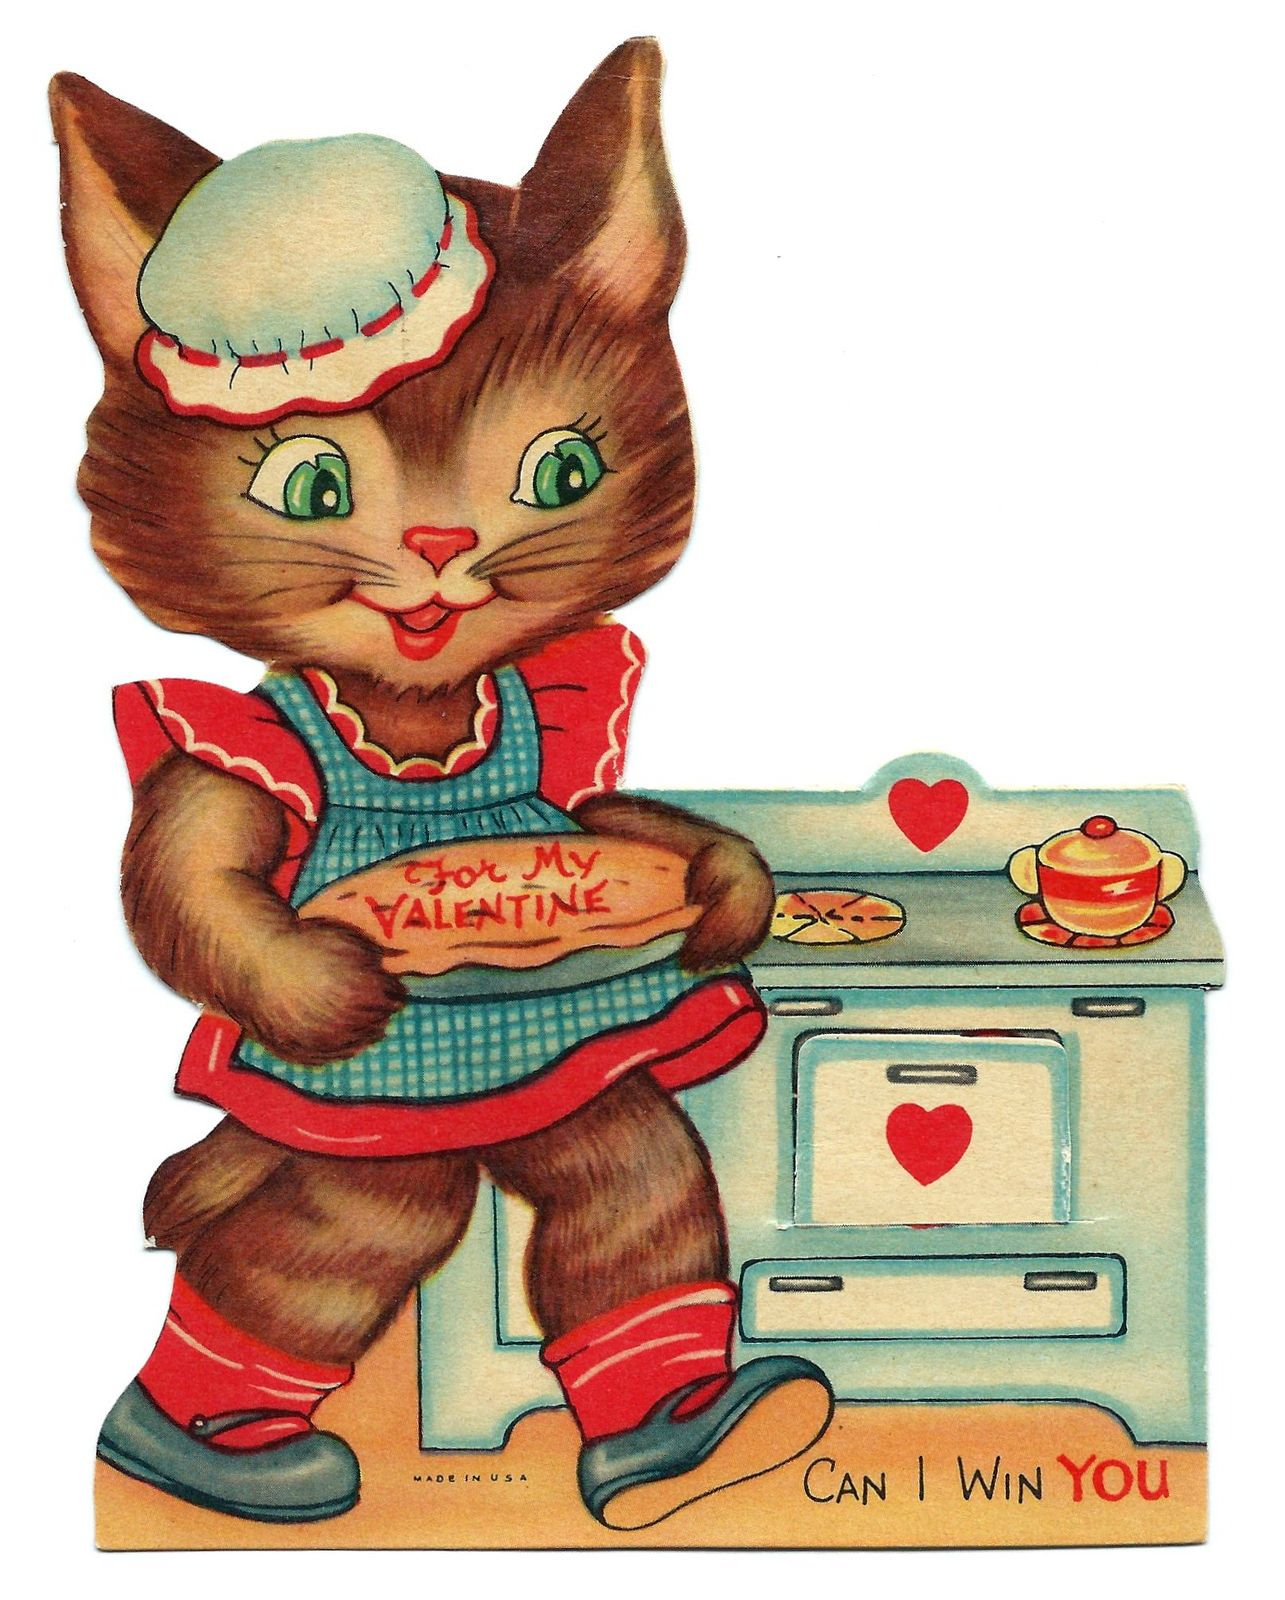 https://flic.kr/p/BYAAW2 | Vintage Valentine Day Greeting Card - Oven Door Opens To Read With A Little Love, Made In USA, Circa 1940